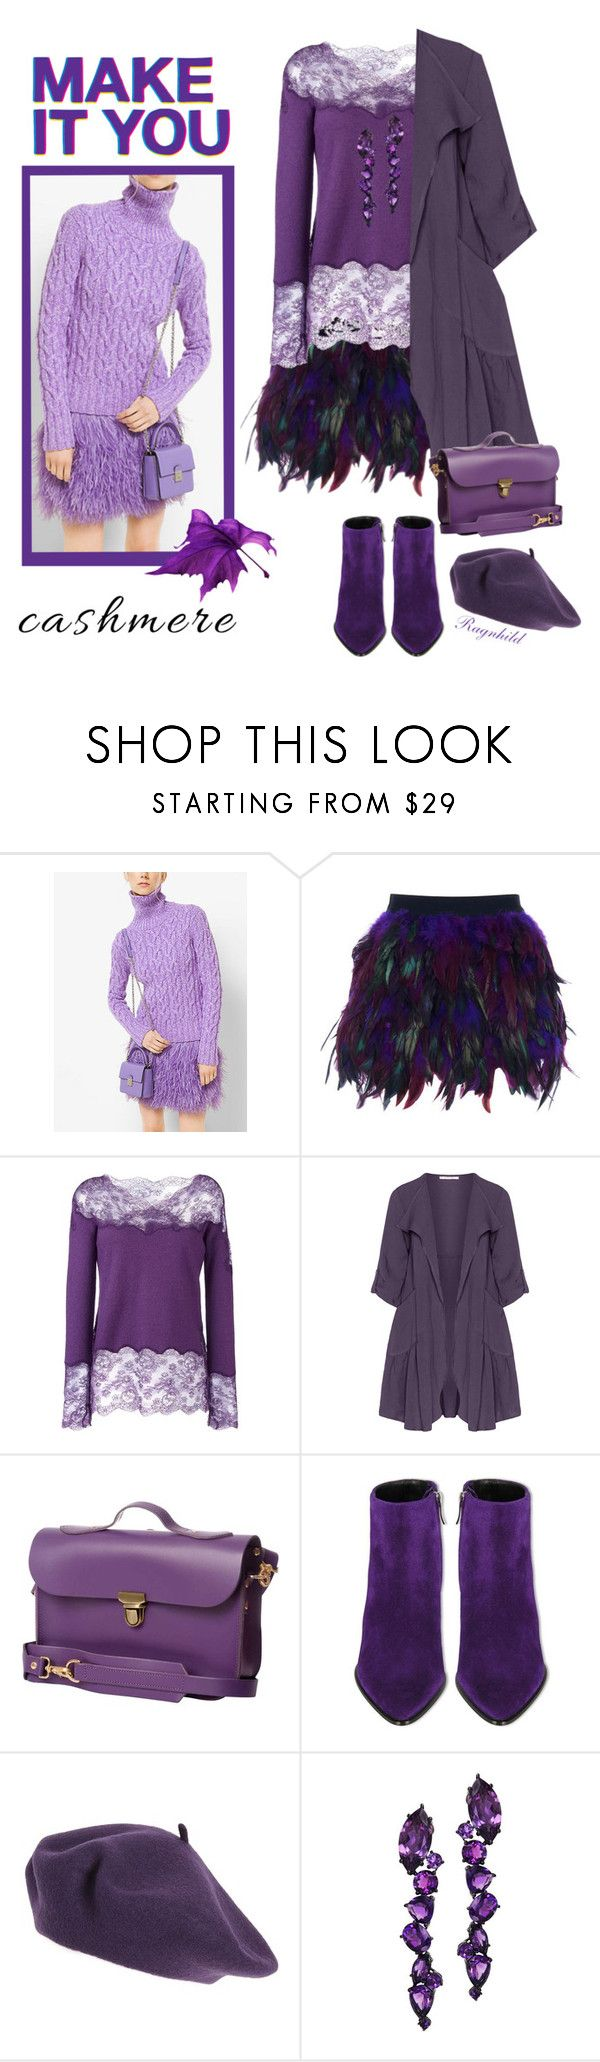 """Purple Cozy Cashmere"" by ragnh-mjos ❤ liked on Polyvore featuring Michael Kors, WithChic, Ermanno Scervino, Oliver Jung, N'Damus, Barbara Bui, Halogen, Plukka and Converse"